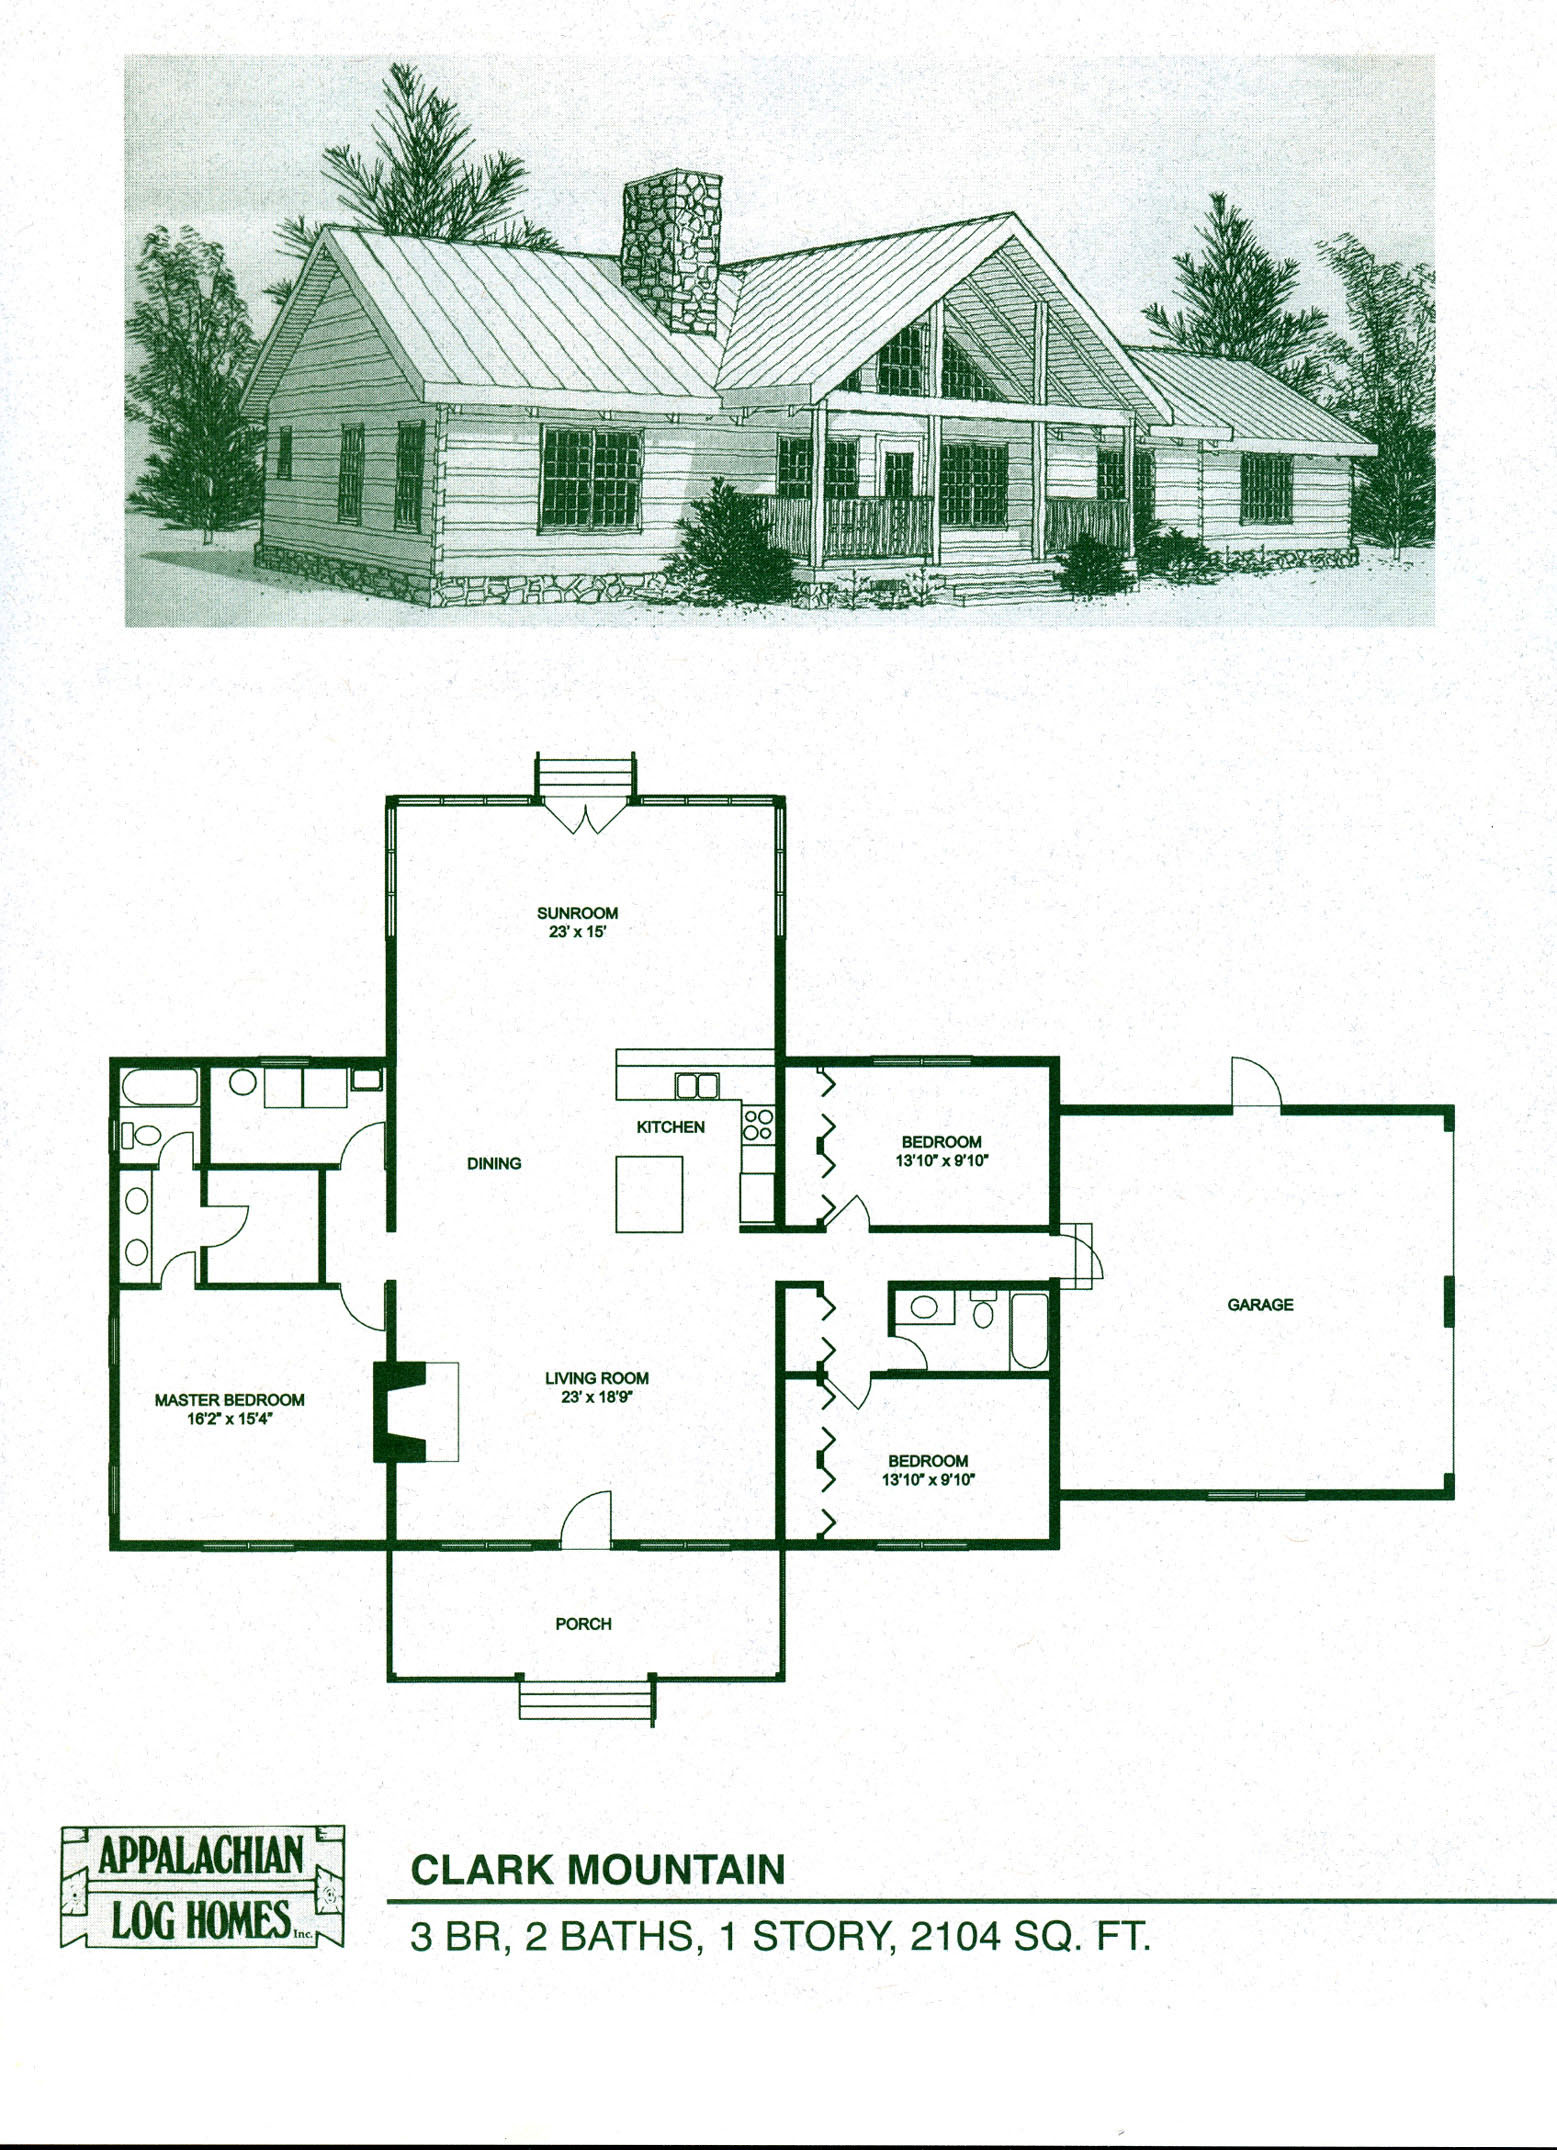 Log cabin loft 2 bedroom log cabin homes floor plans log for 2 bedroom log cabin with loft